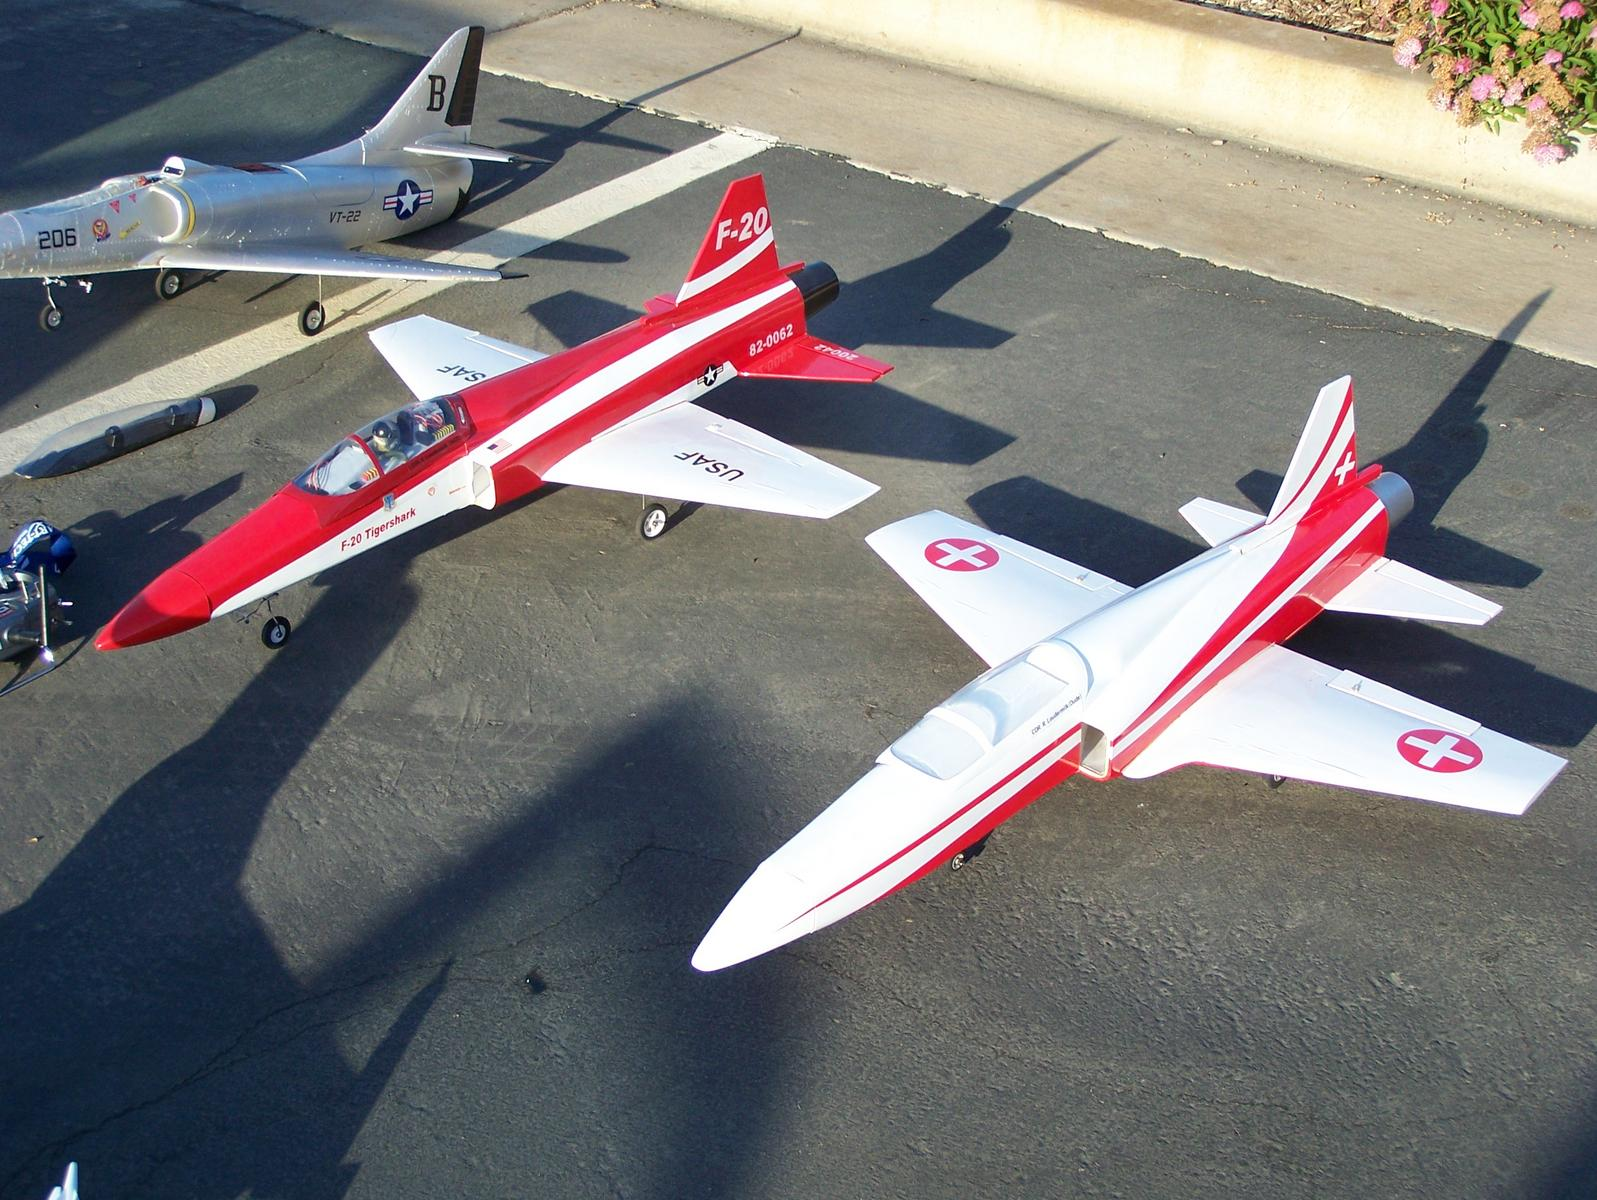 Name: 100_1069.jpg Views: 246 Size: 275.2 KB Description: HET F20 beside a AFA Airpower F20. Can you tell which one is which?